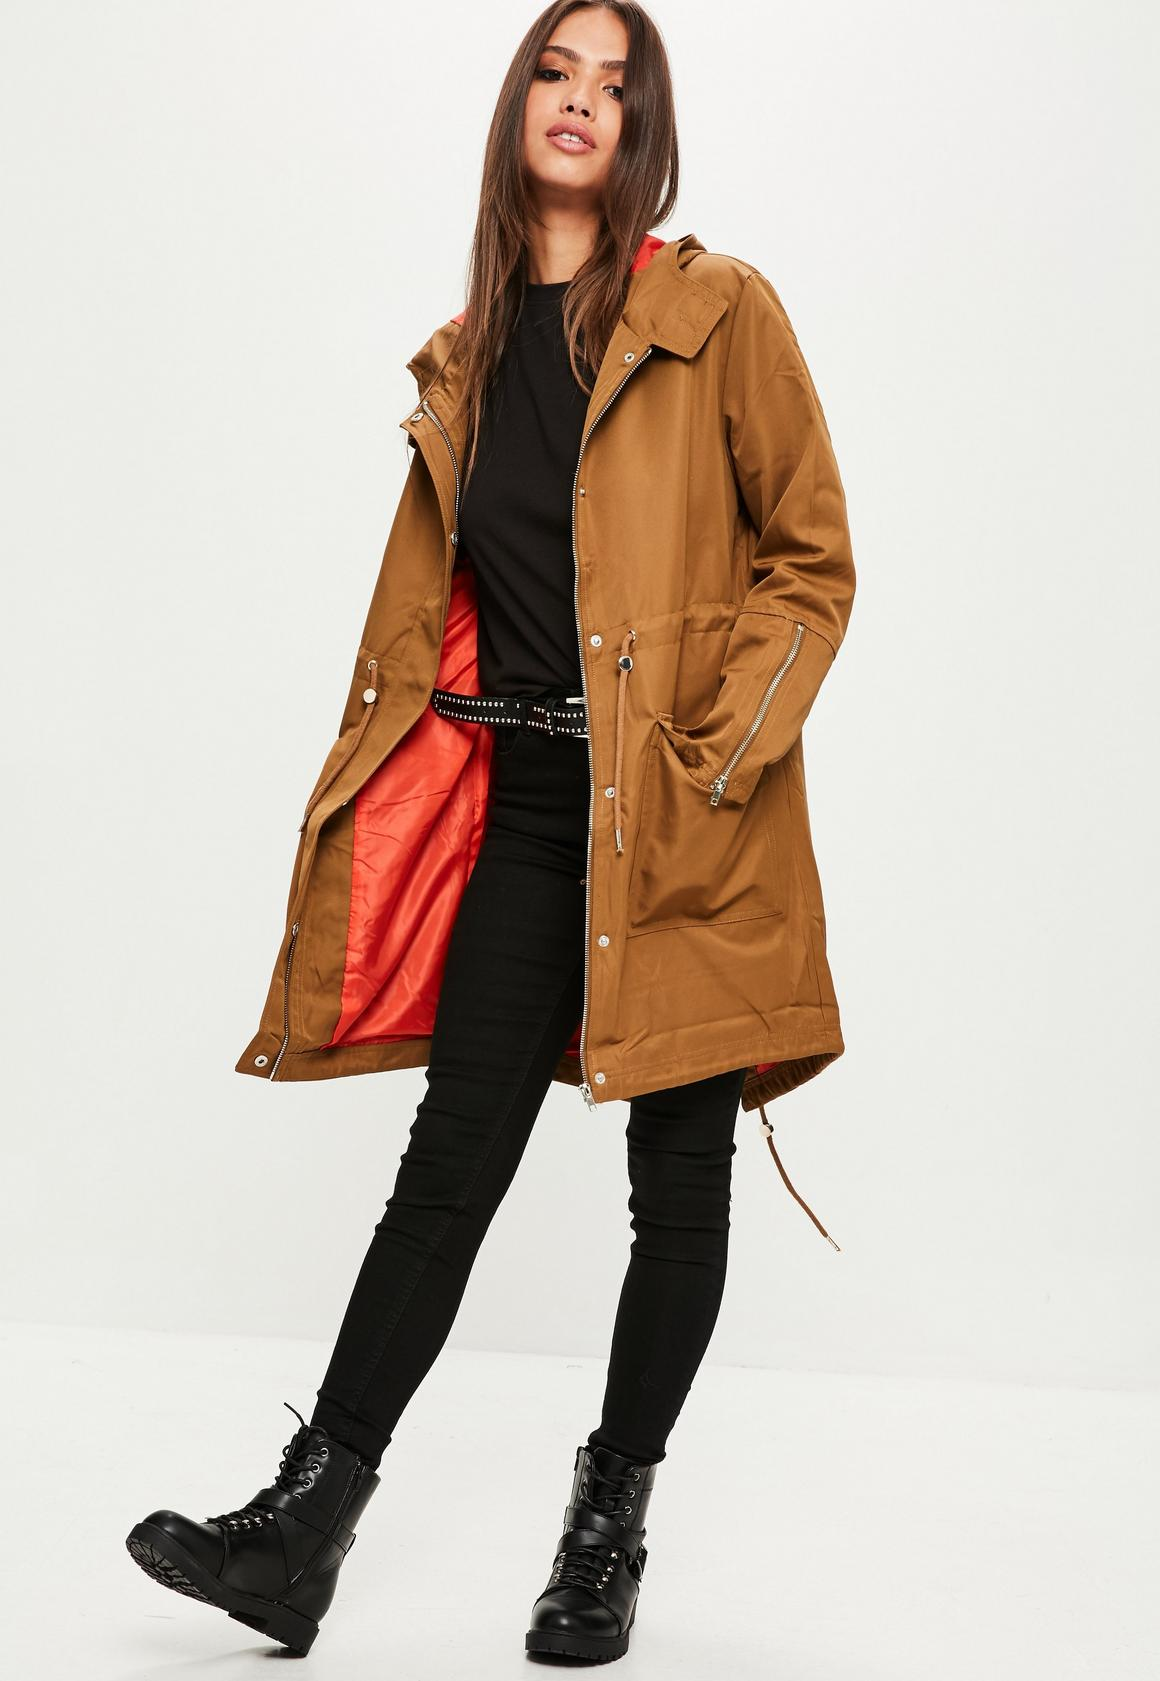 Coats & Jackets | Women's Coats Online - Missguided